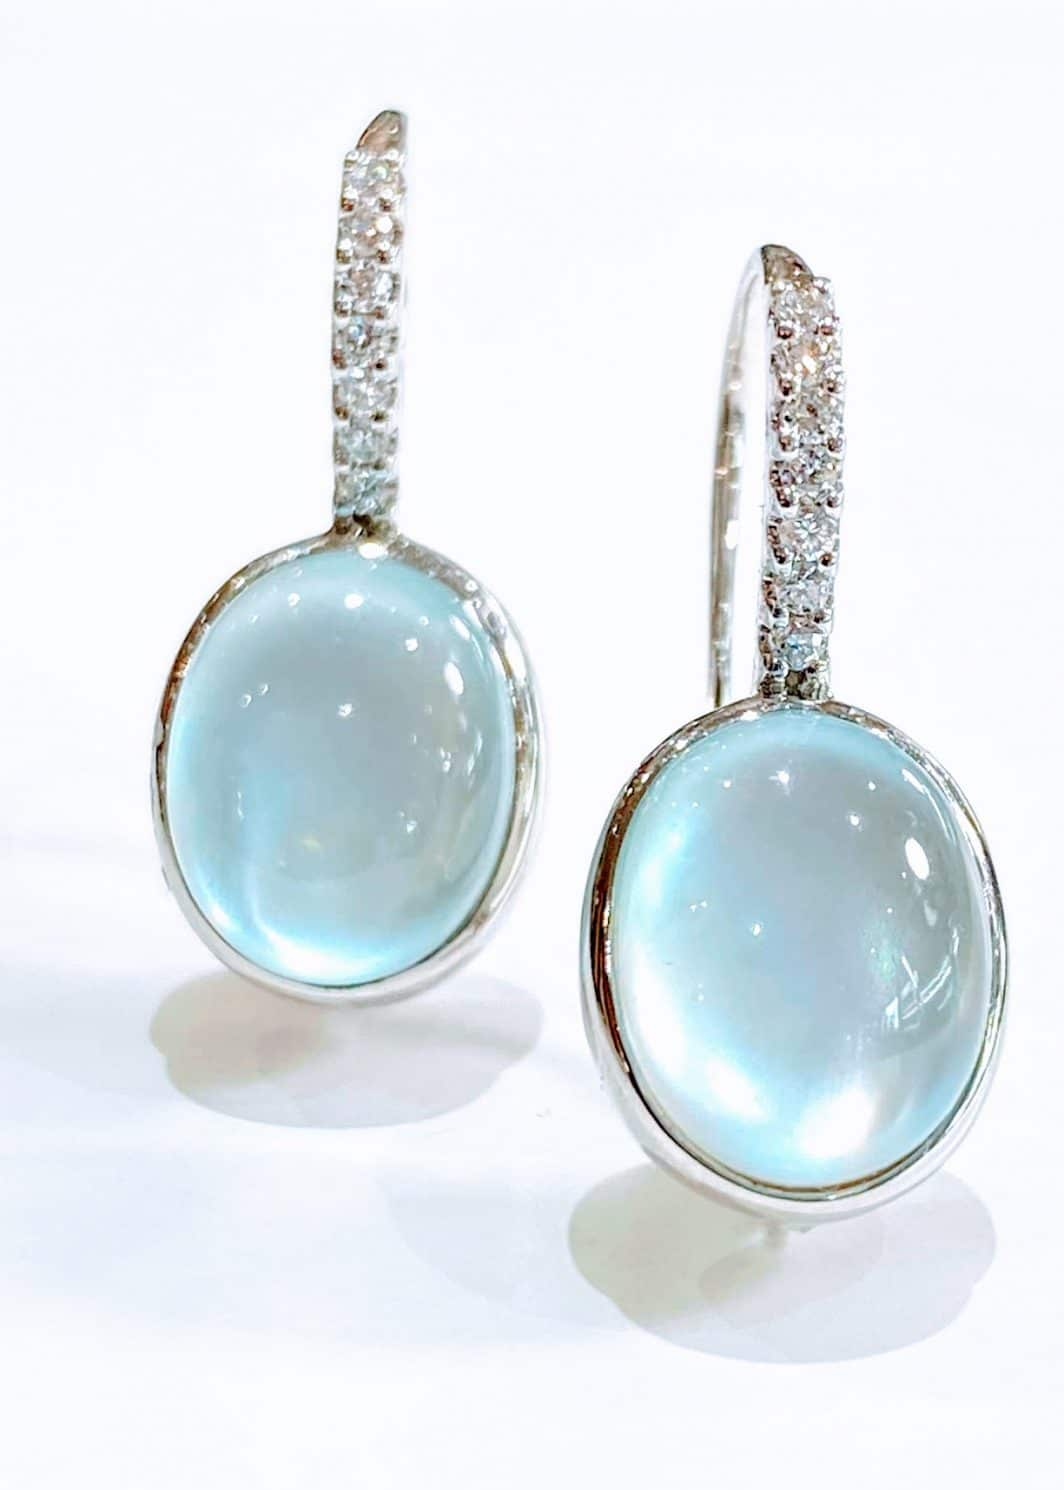 14Kt White Gold Earrings With Moonstone and Diamonds